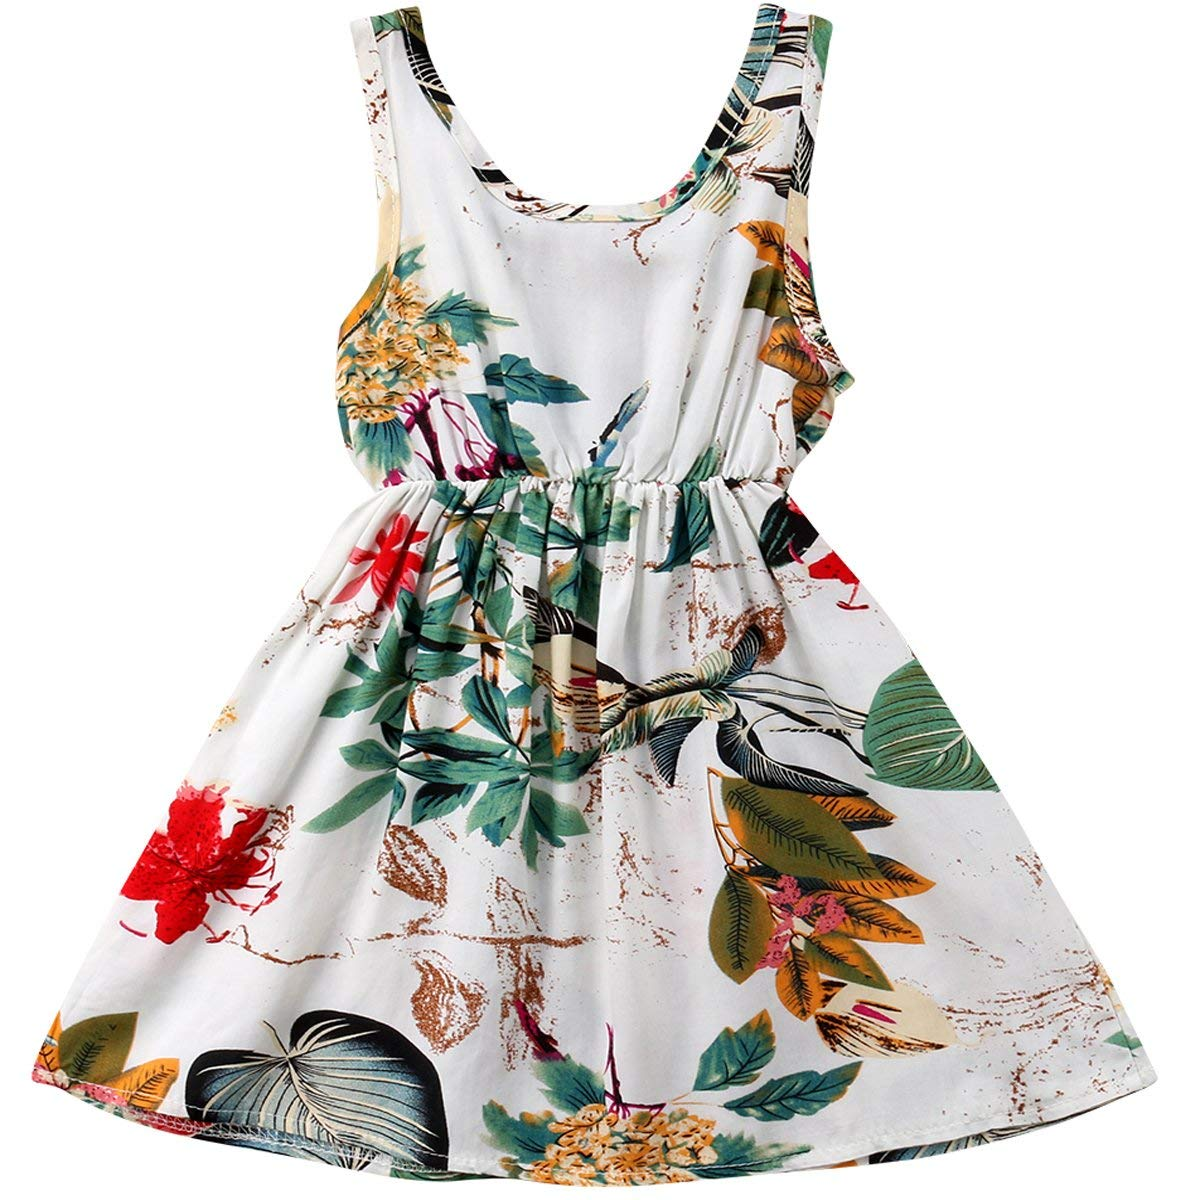 Aidio Baby Girl Strap Dress Striped Rose Flower Vintage Floral Toddler Casual